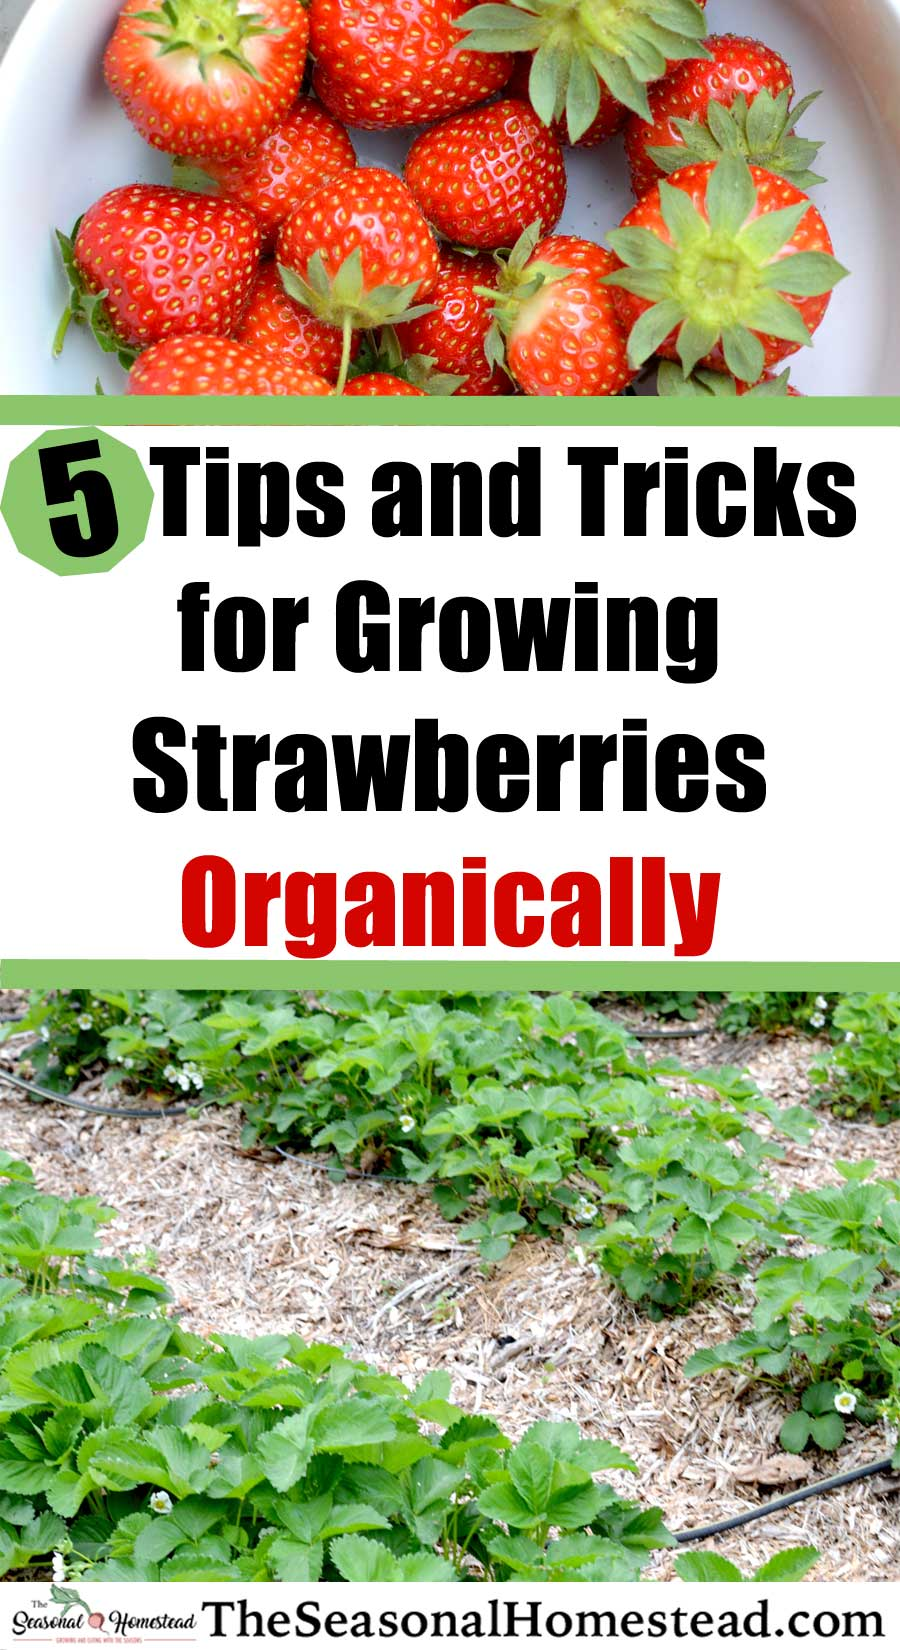 5-Tips-and-Tricks-StrawberriesPin.jpg